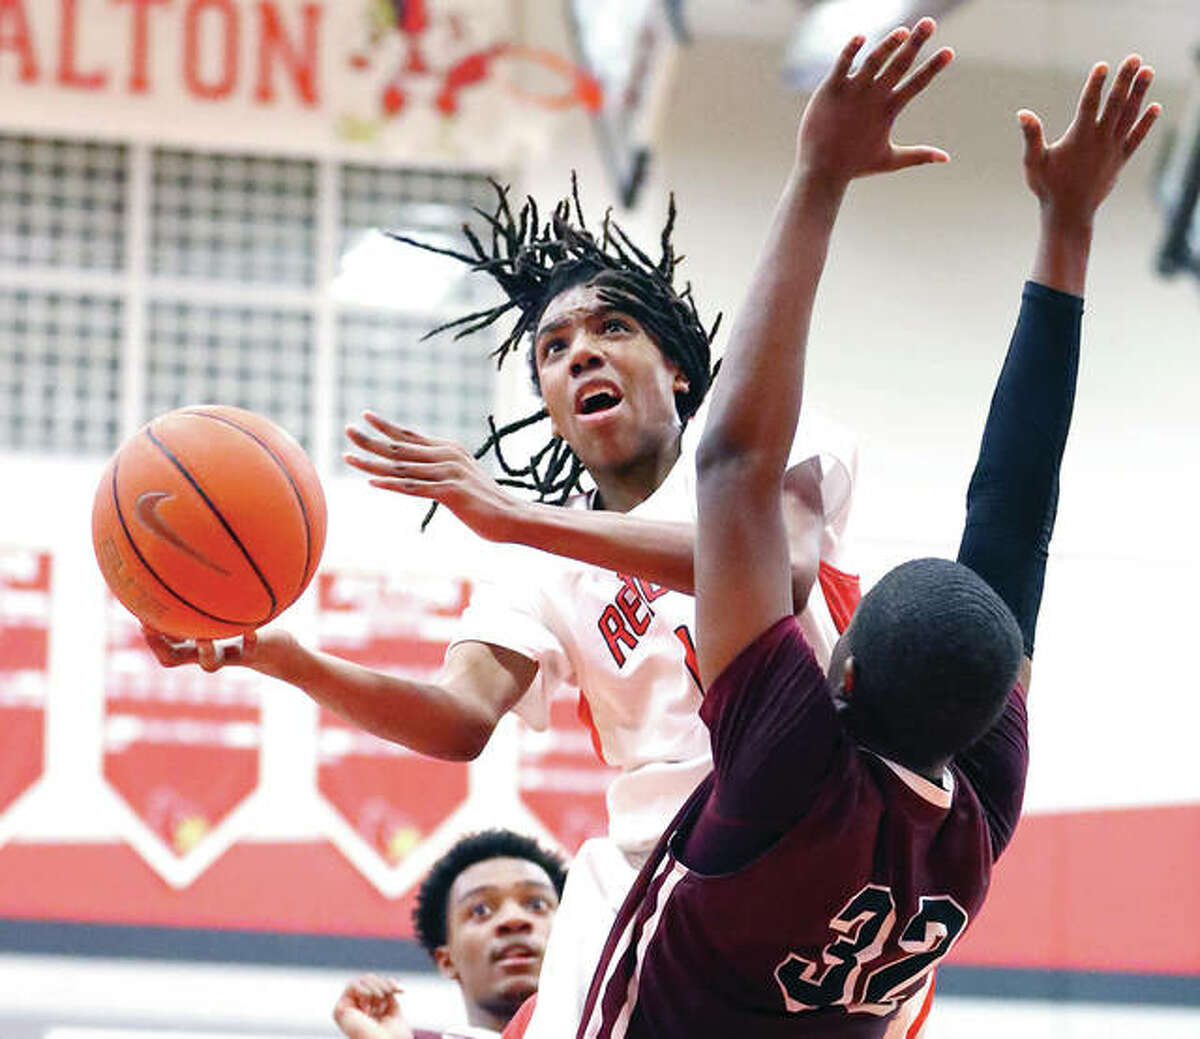 Alton's Donovan Clay and the Redbirds opened tourney play at Belleville East on Tuesday night with a loss to Champaign Central. He is shownshooting around Belleville West's E.J. Liddell (right) during a SWC game Jan. 5 at Alton High.